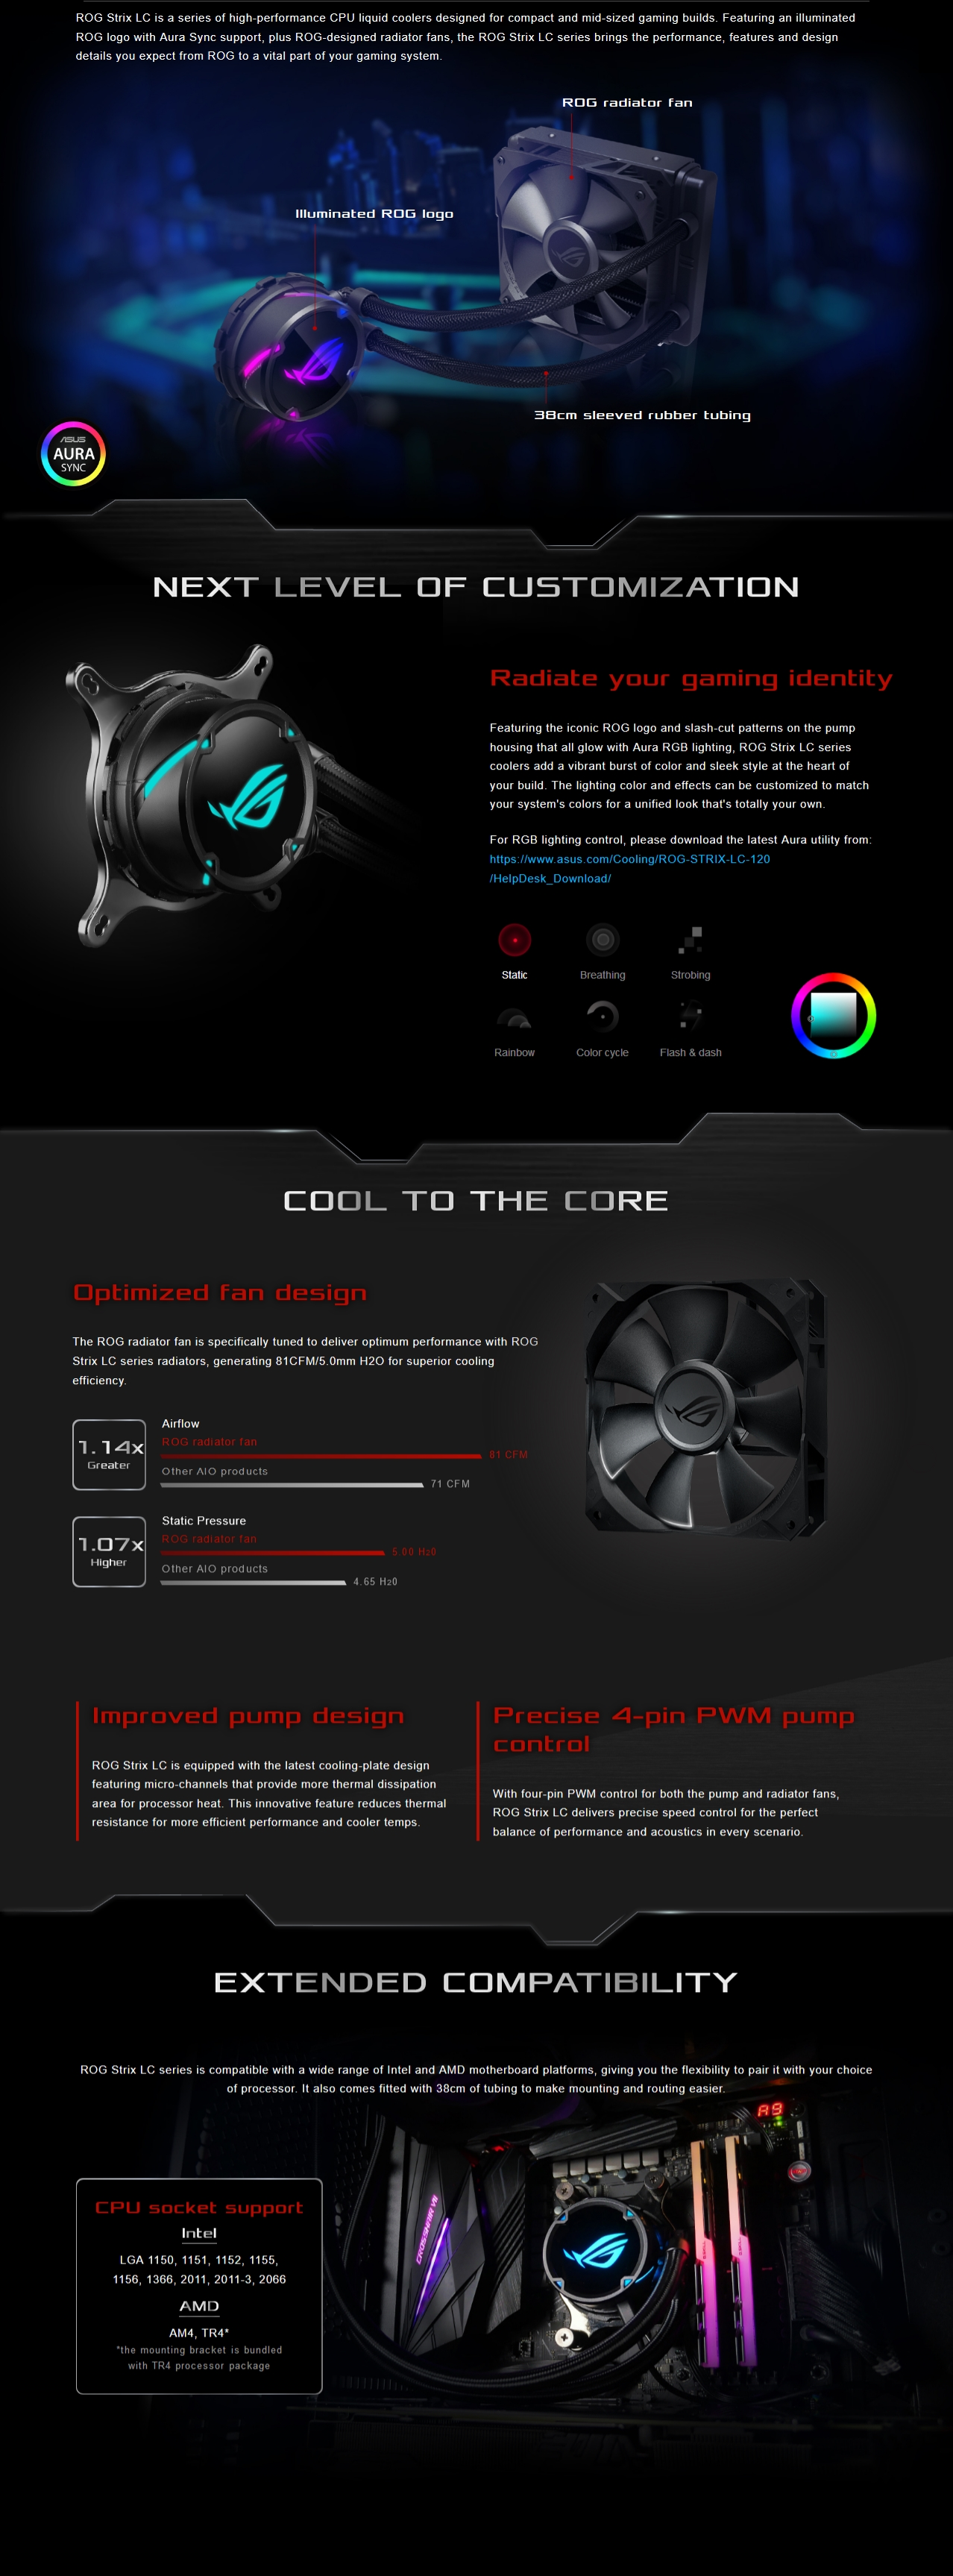 A large marketing image providing additional information about the product ASUS ROG Strix LC 120mm AIO Liquid Cooler - Additional alt info not provided